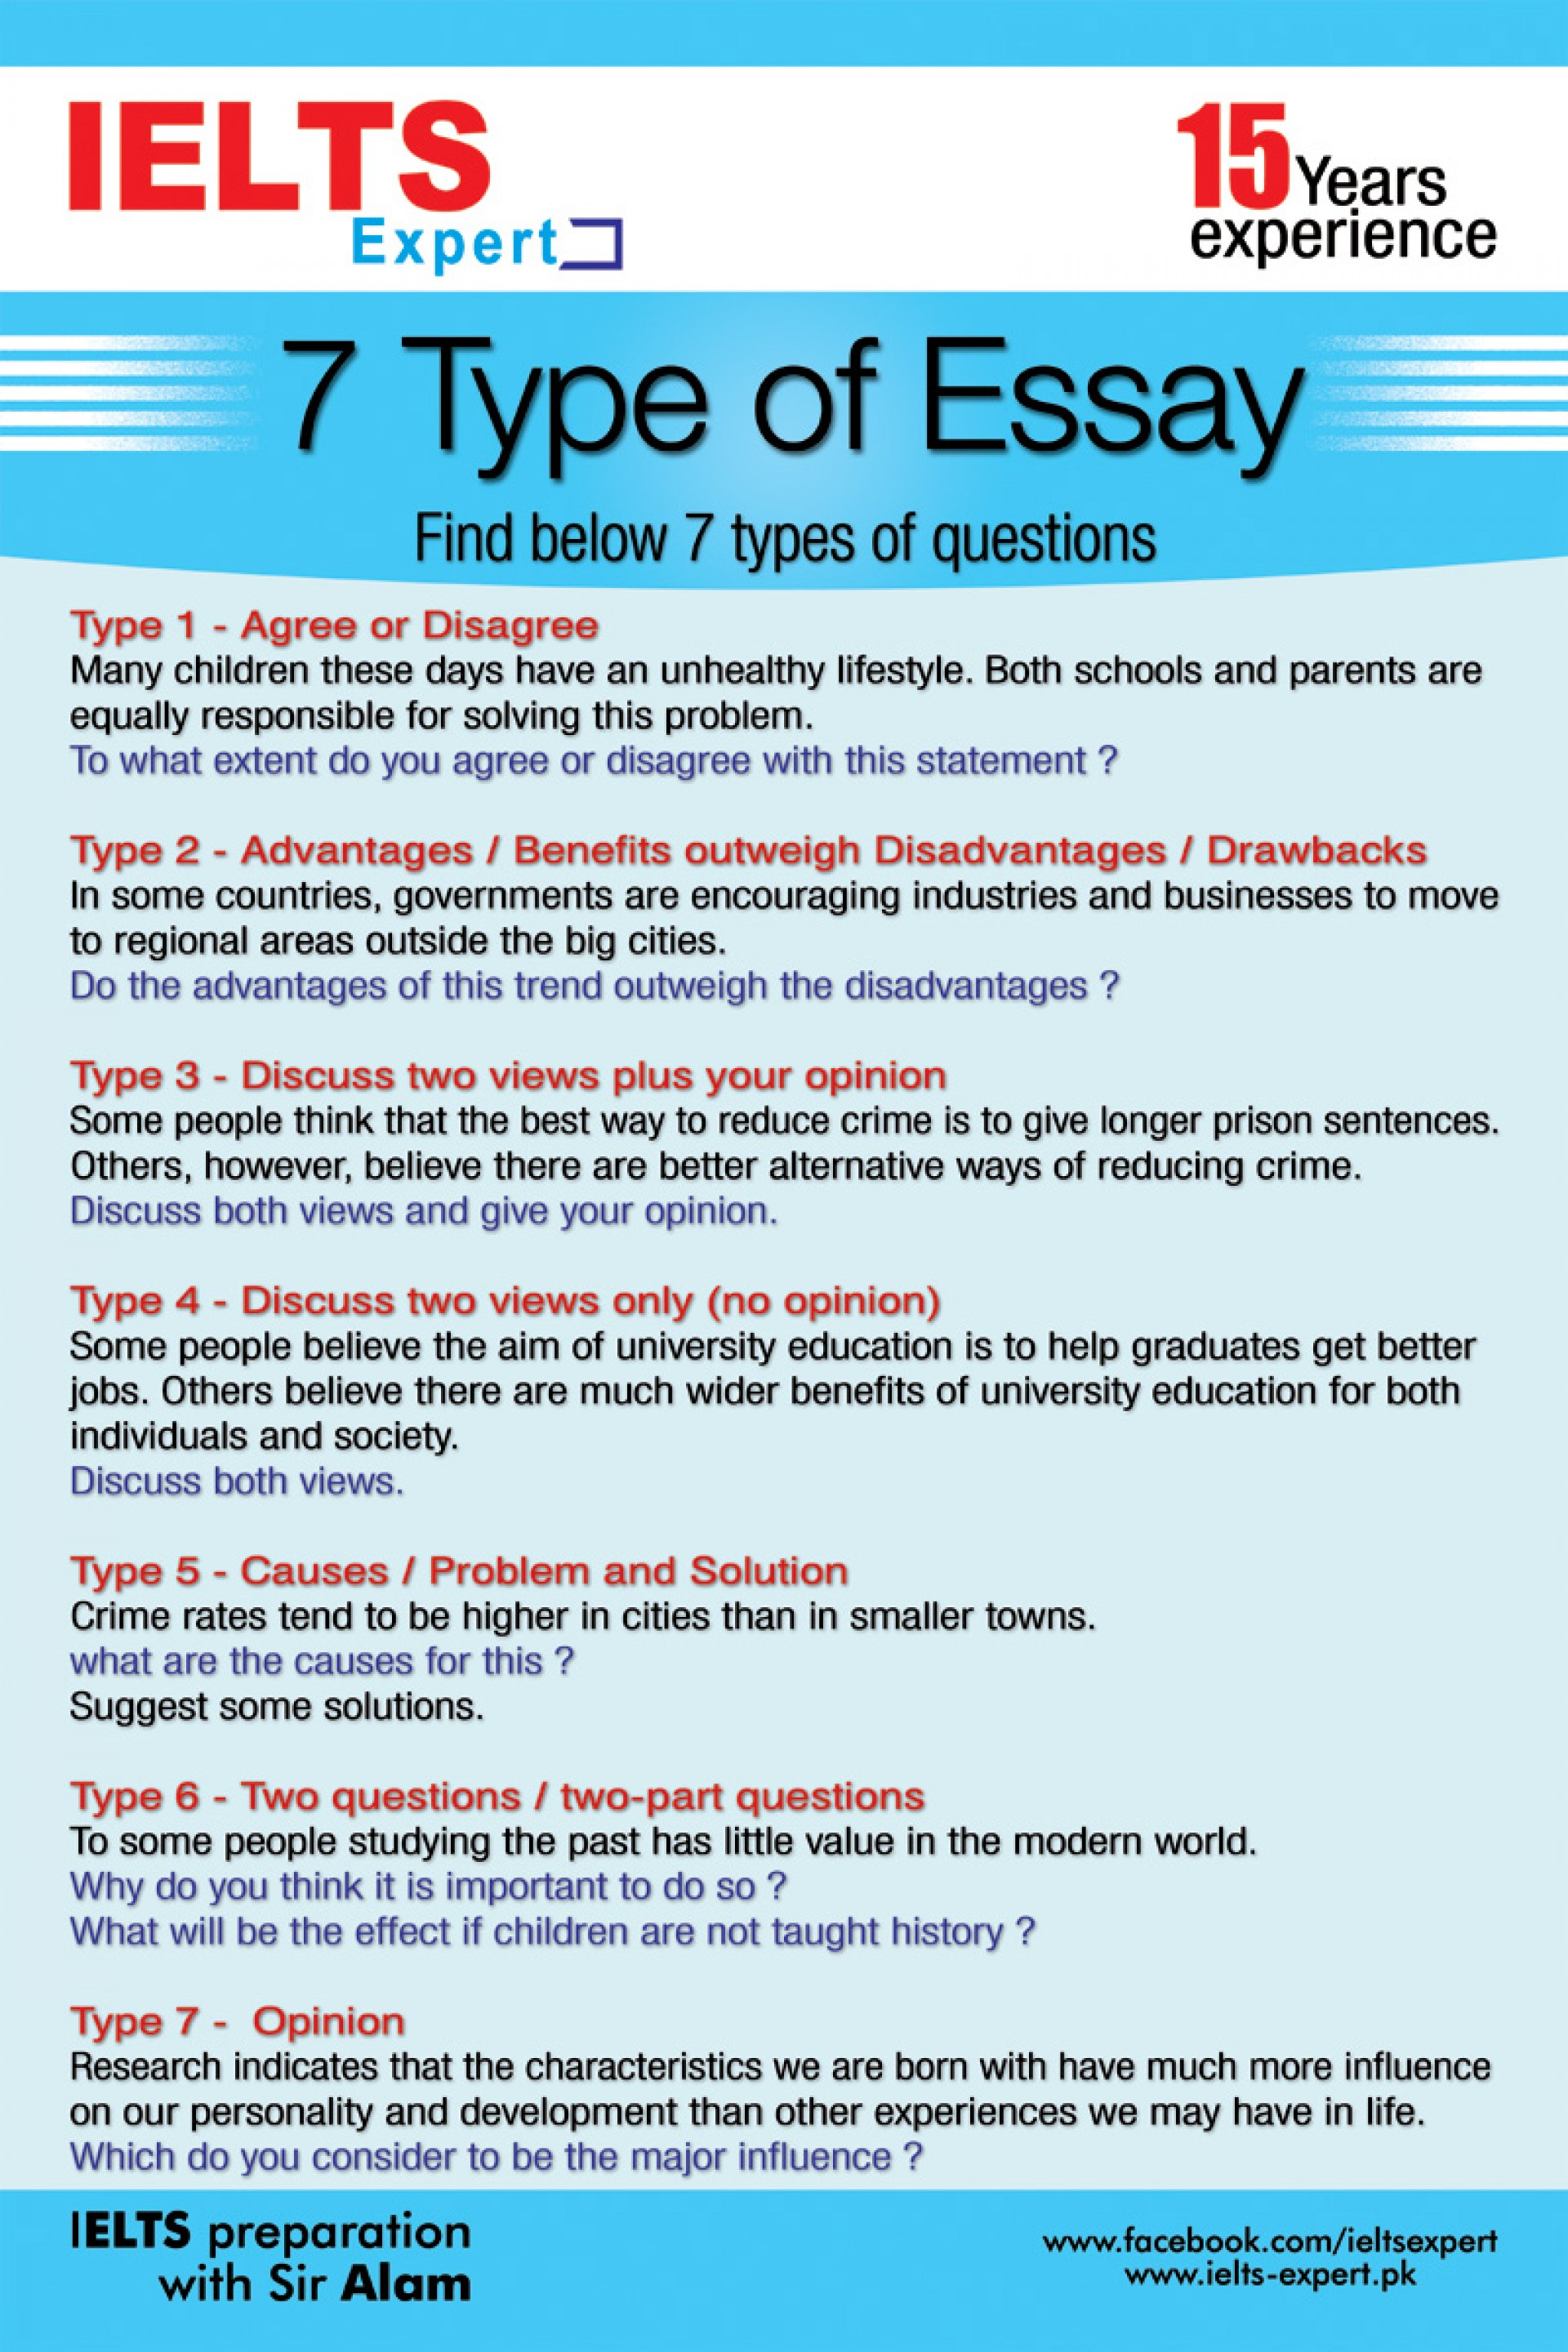 001 Type An Essay Example Of Fantastic Writing Write Question How To On Your Iphone 1920